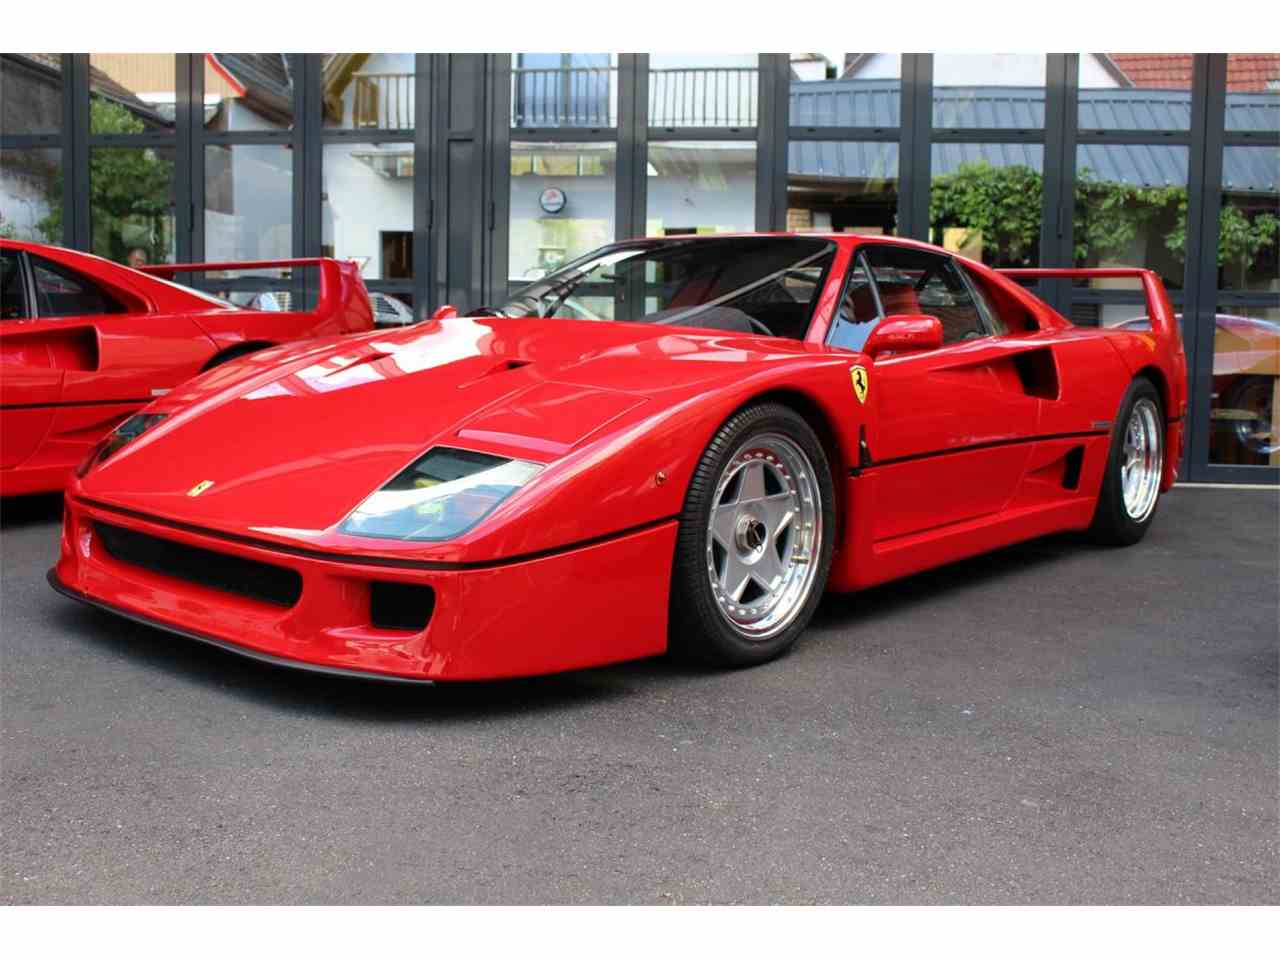 driver ferrari news track models prices photo cars hp pista the original and s revealed warrior car